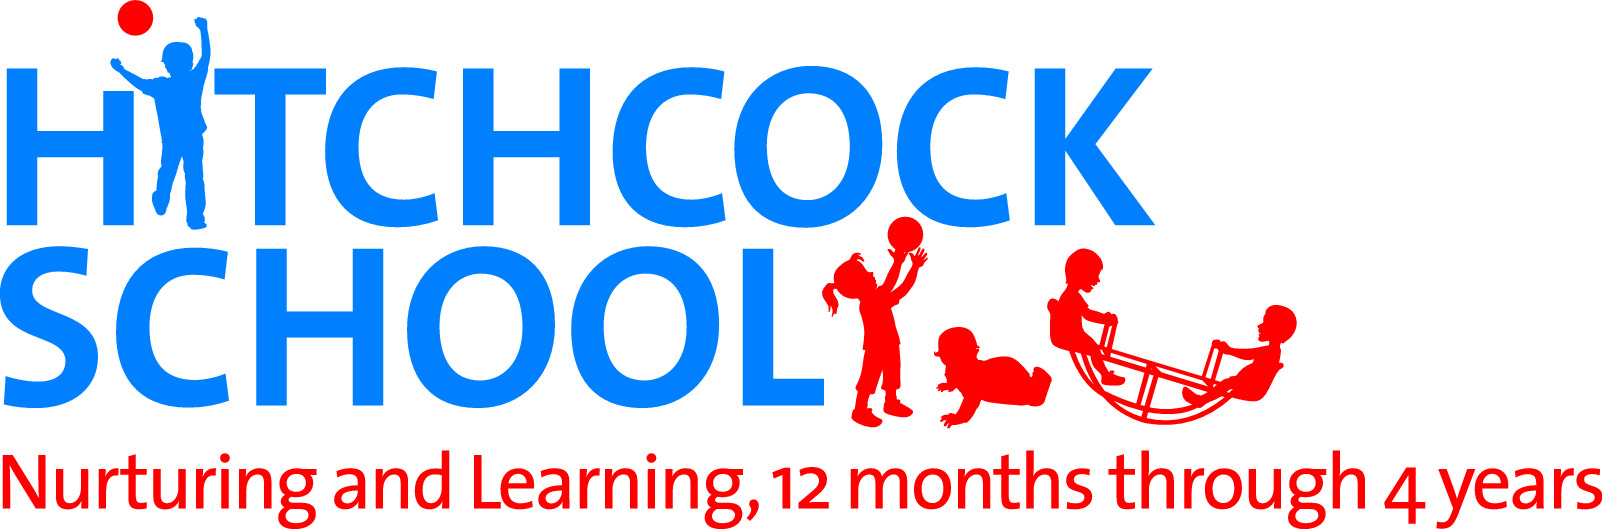 HitchcockSchool-logo-updated.jpg